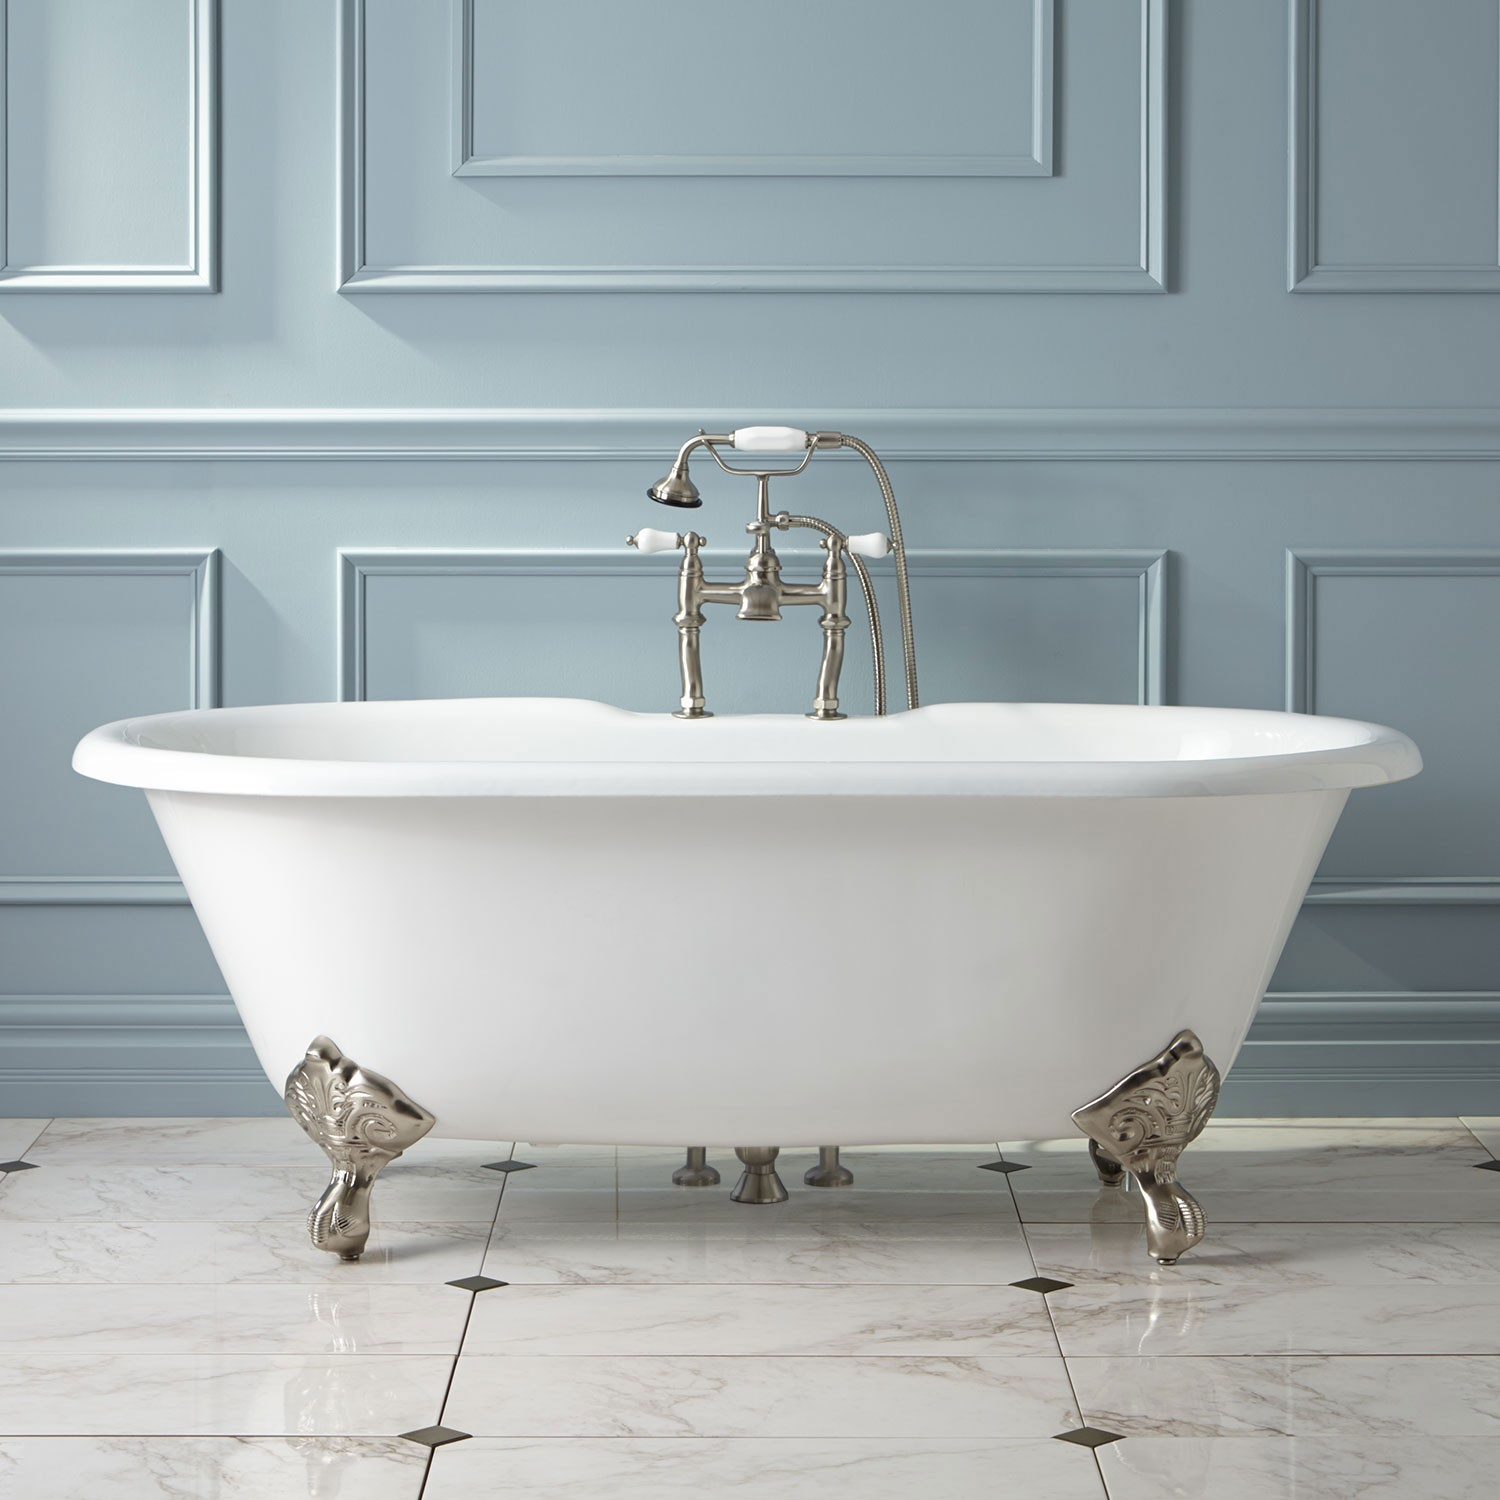 Enjoy your bathing time with bathtubs